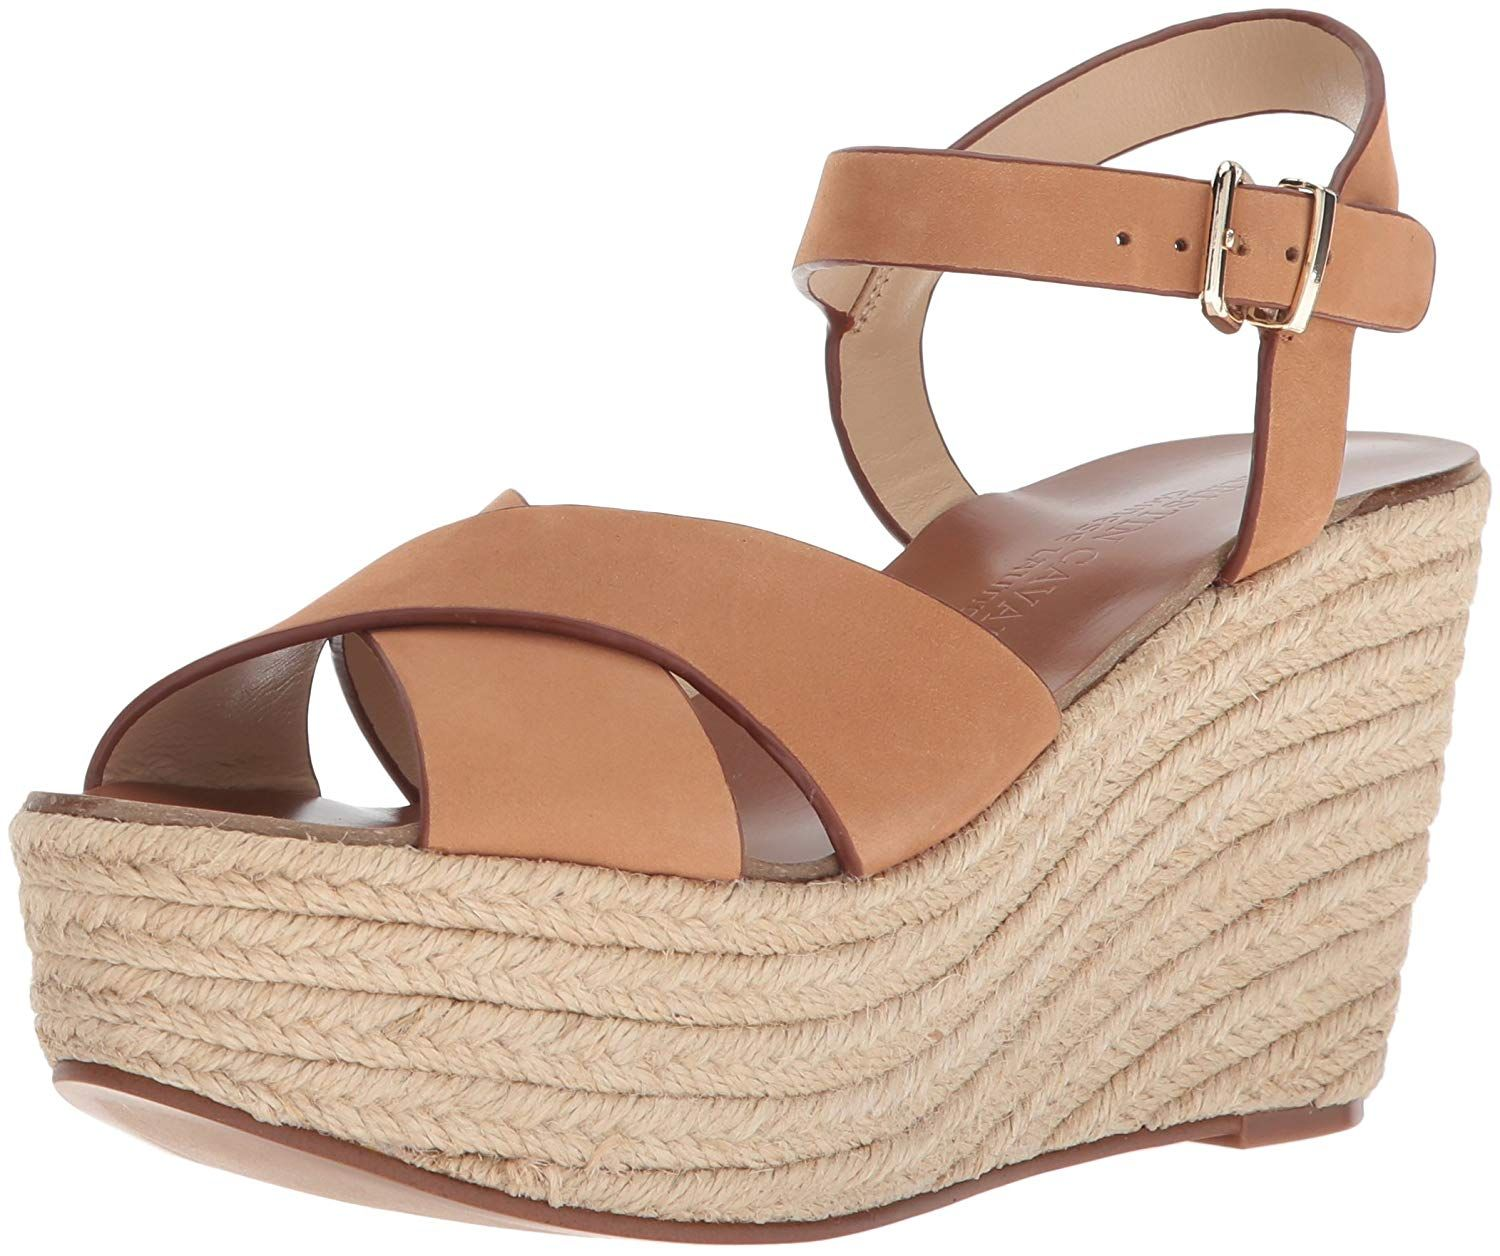 6fe8cb2c884 Peep toe platform espadrille wedge with criss cross upper and metal buckle ankle  strap. Women s Shoes